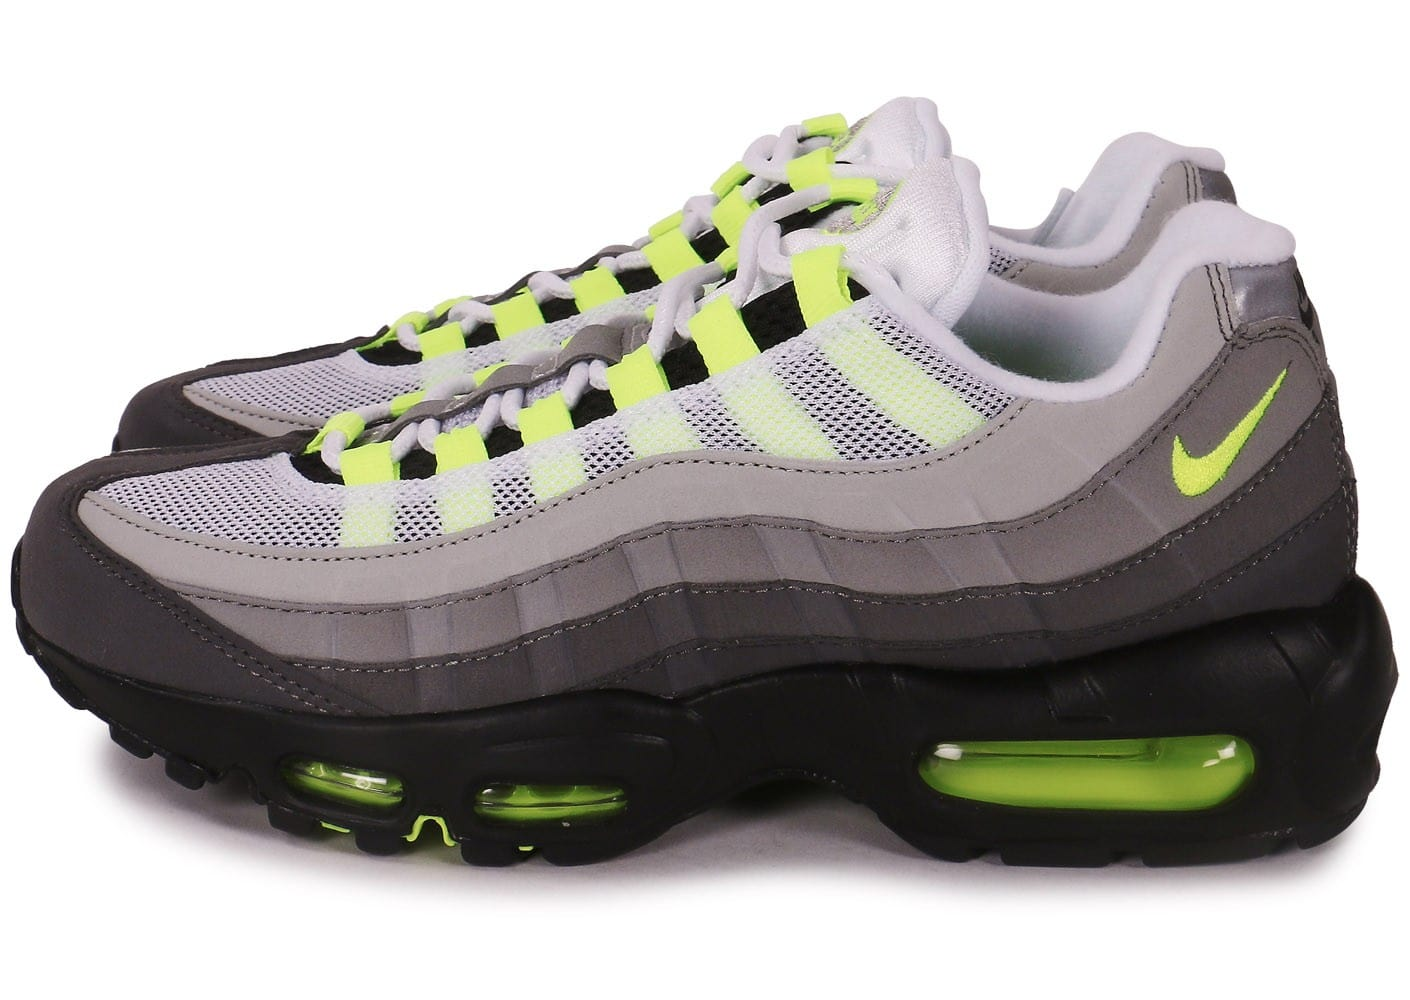 Nike Air Max 95 OG Chaussures Baskets homme Chausport